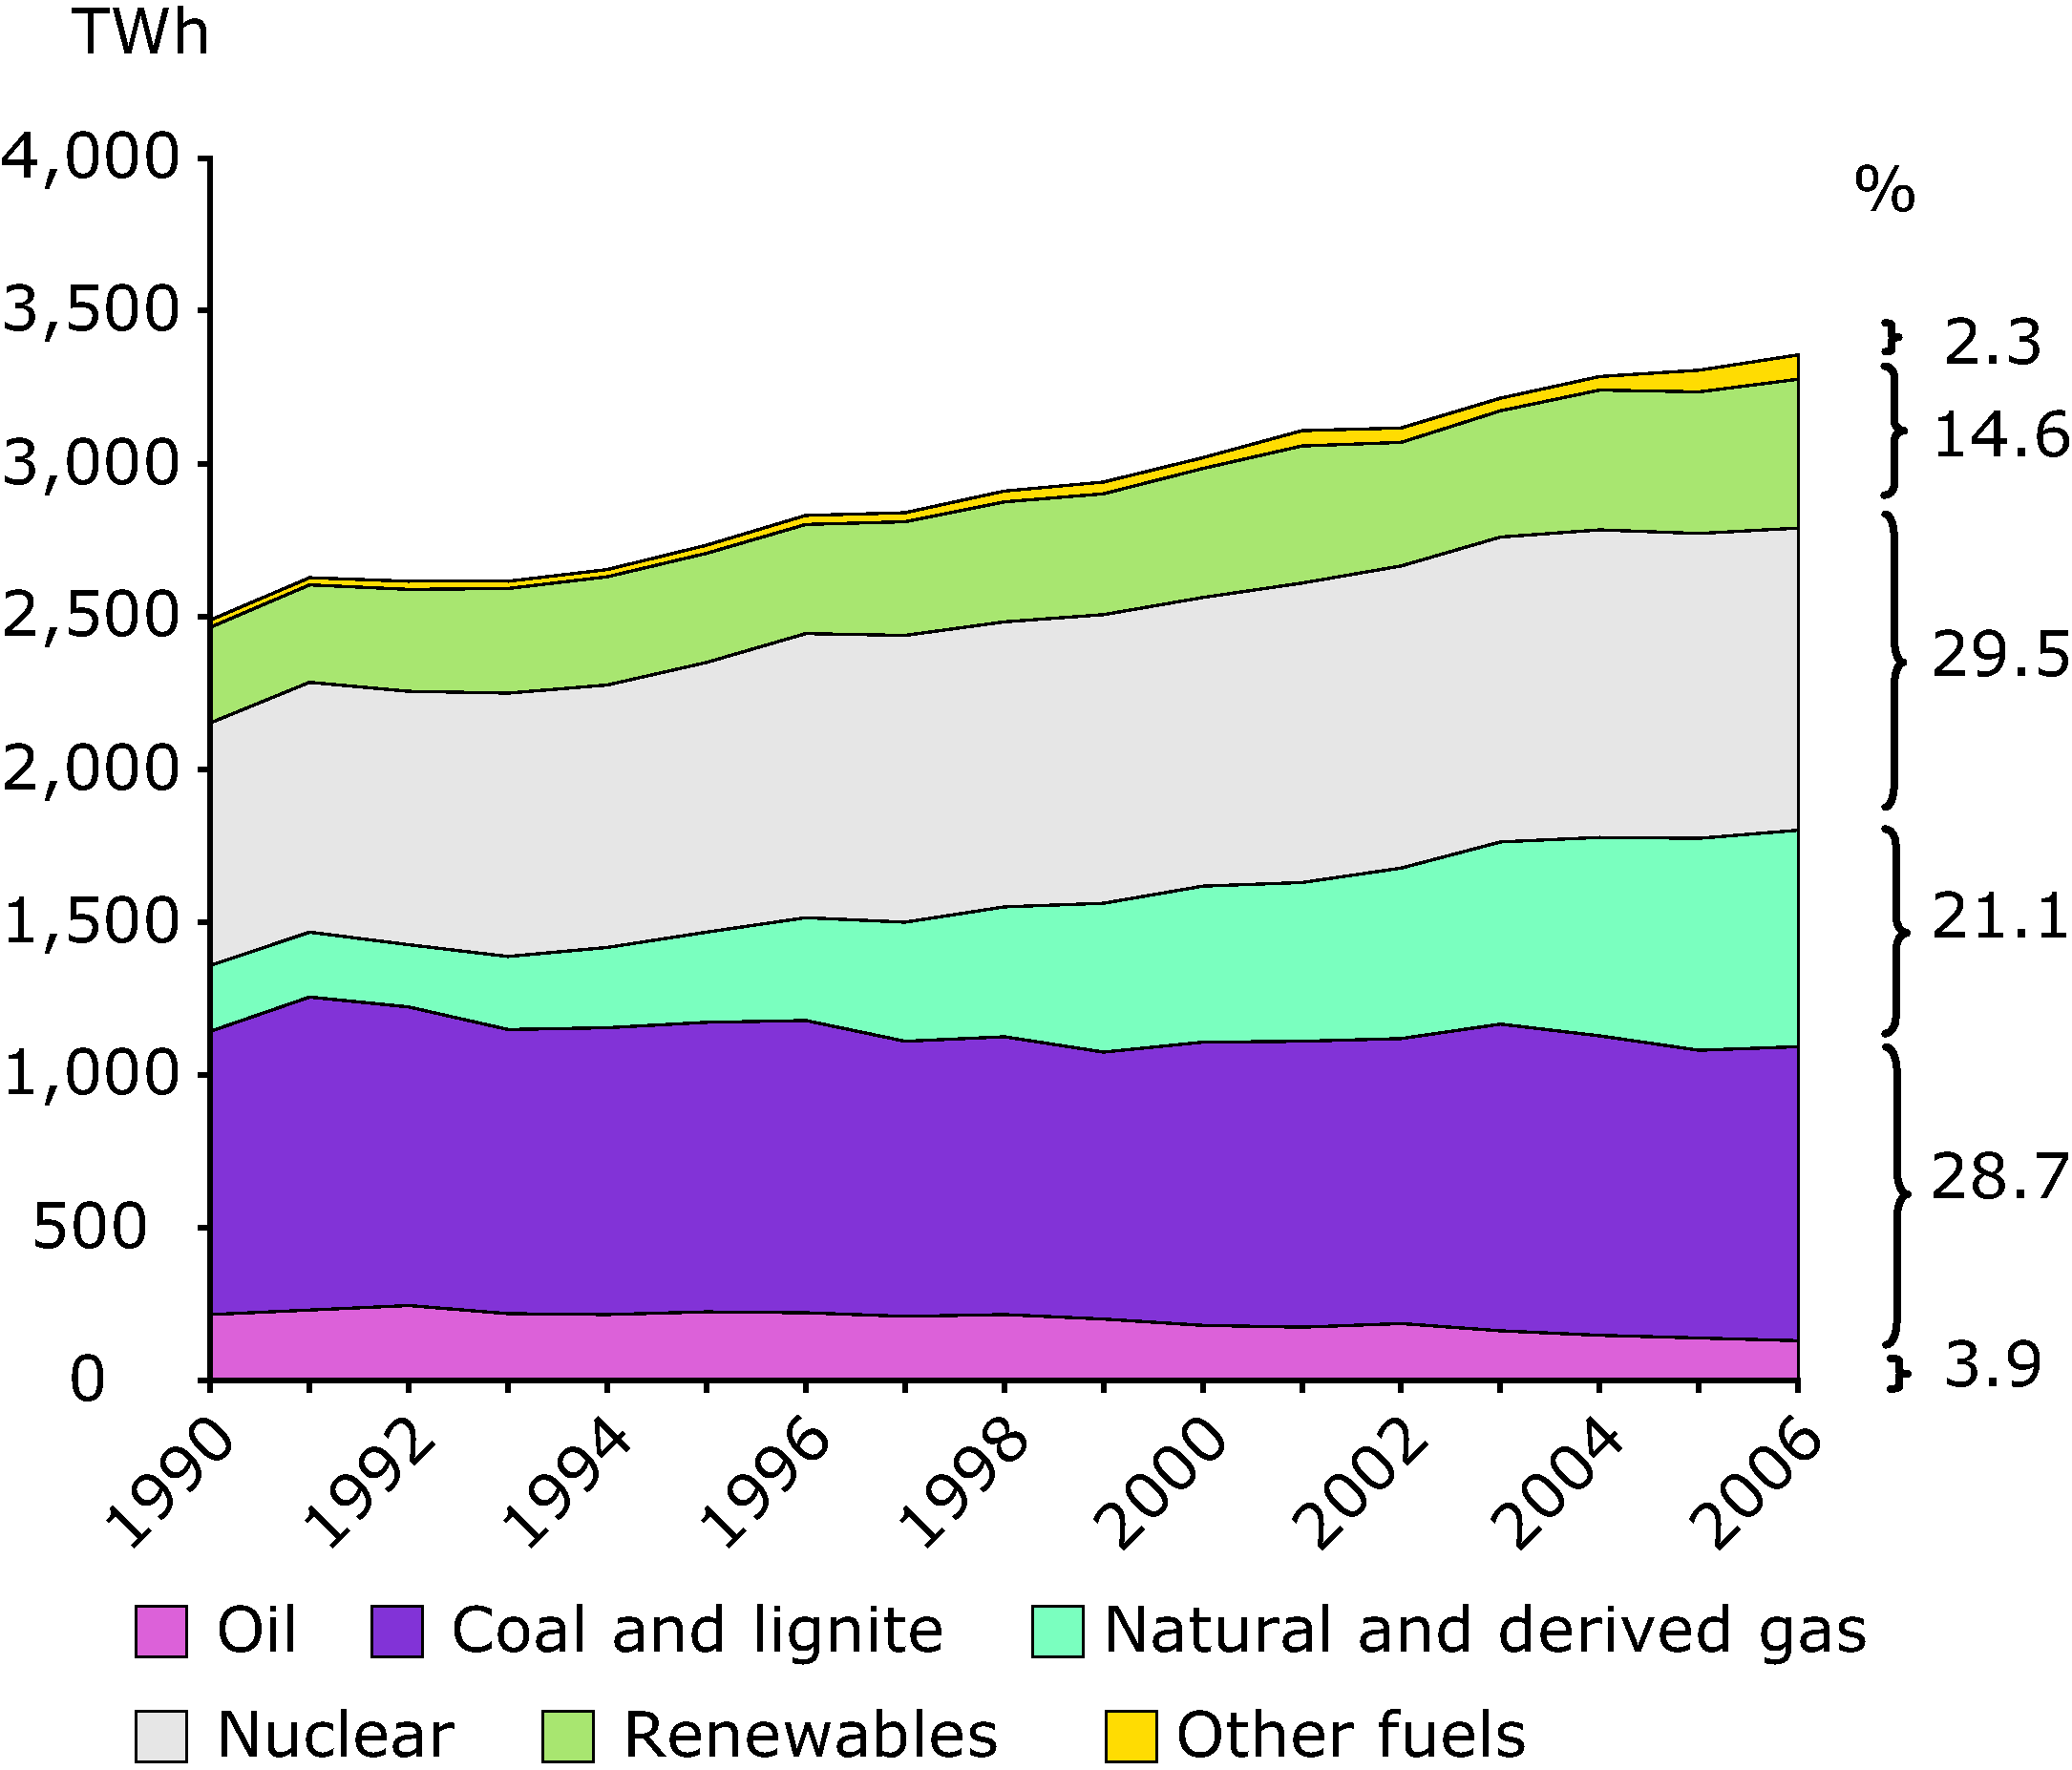 Gross electricity production by fuel, EU-27